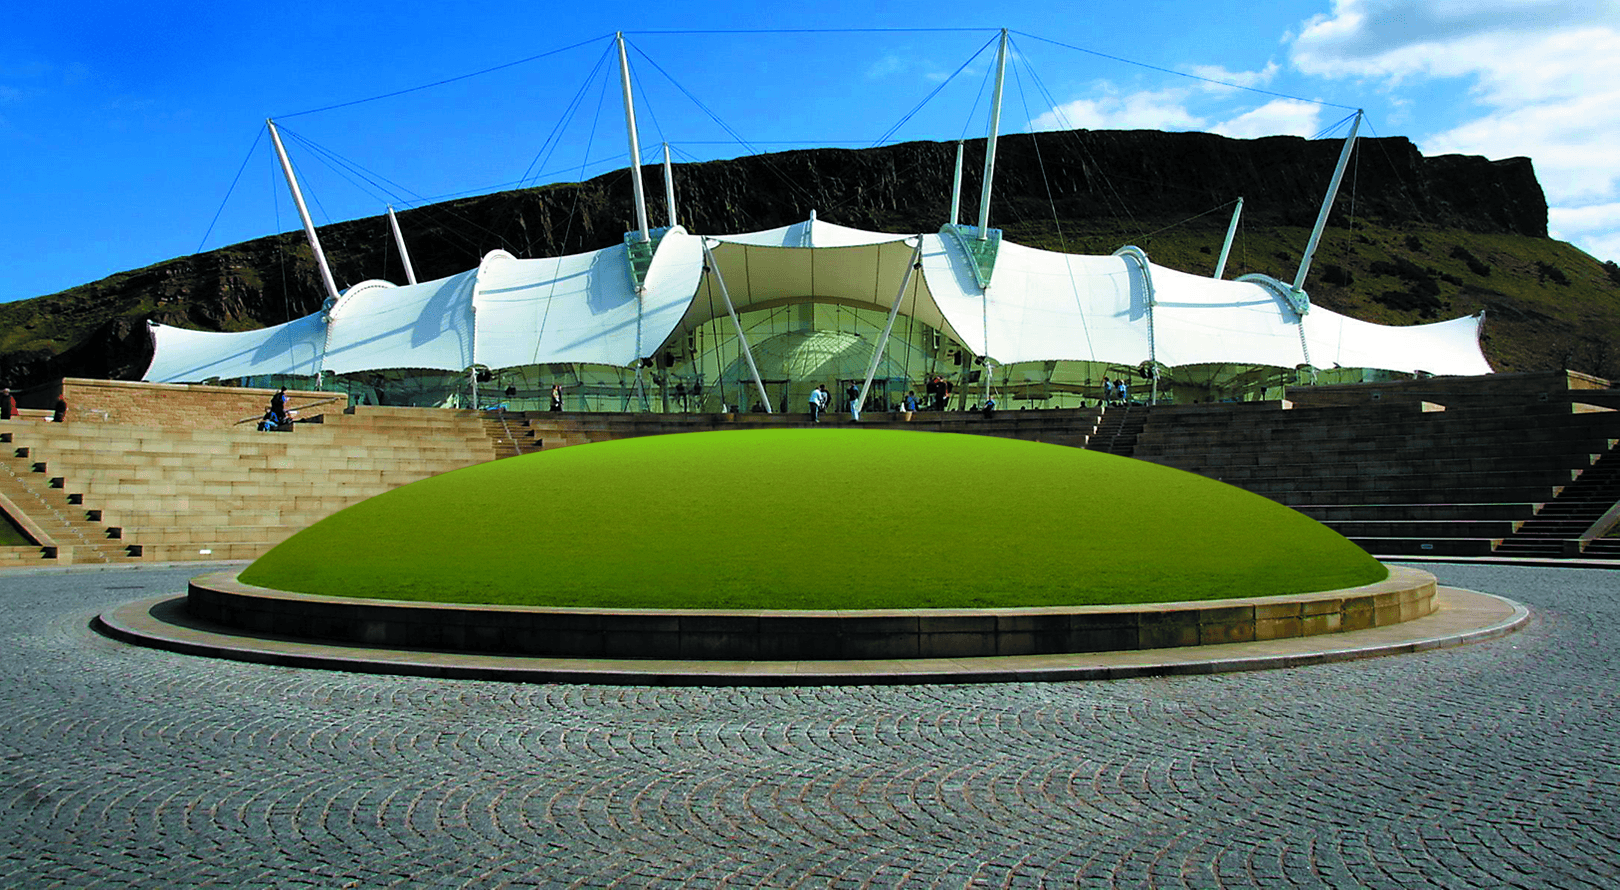 Photo: Our Dynamic Earth